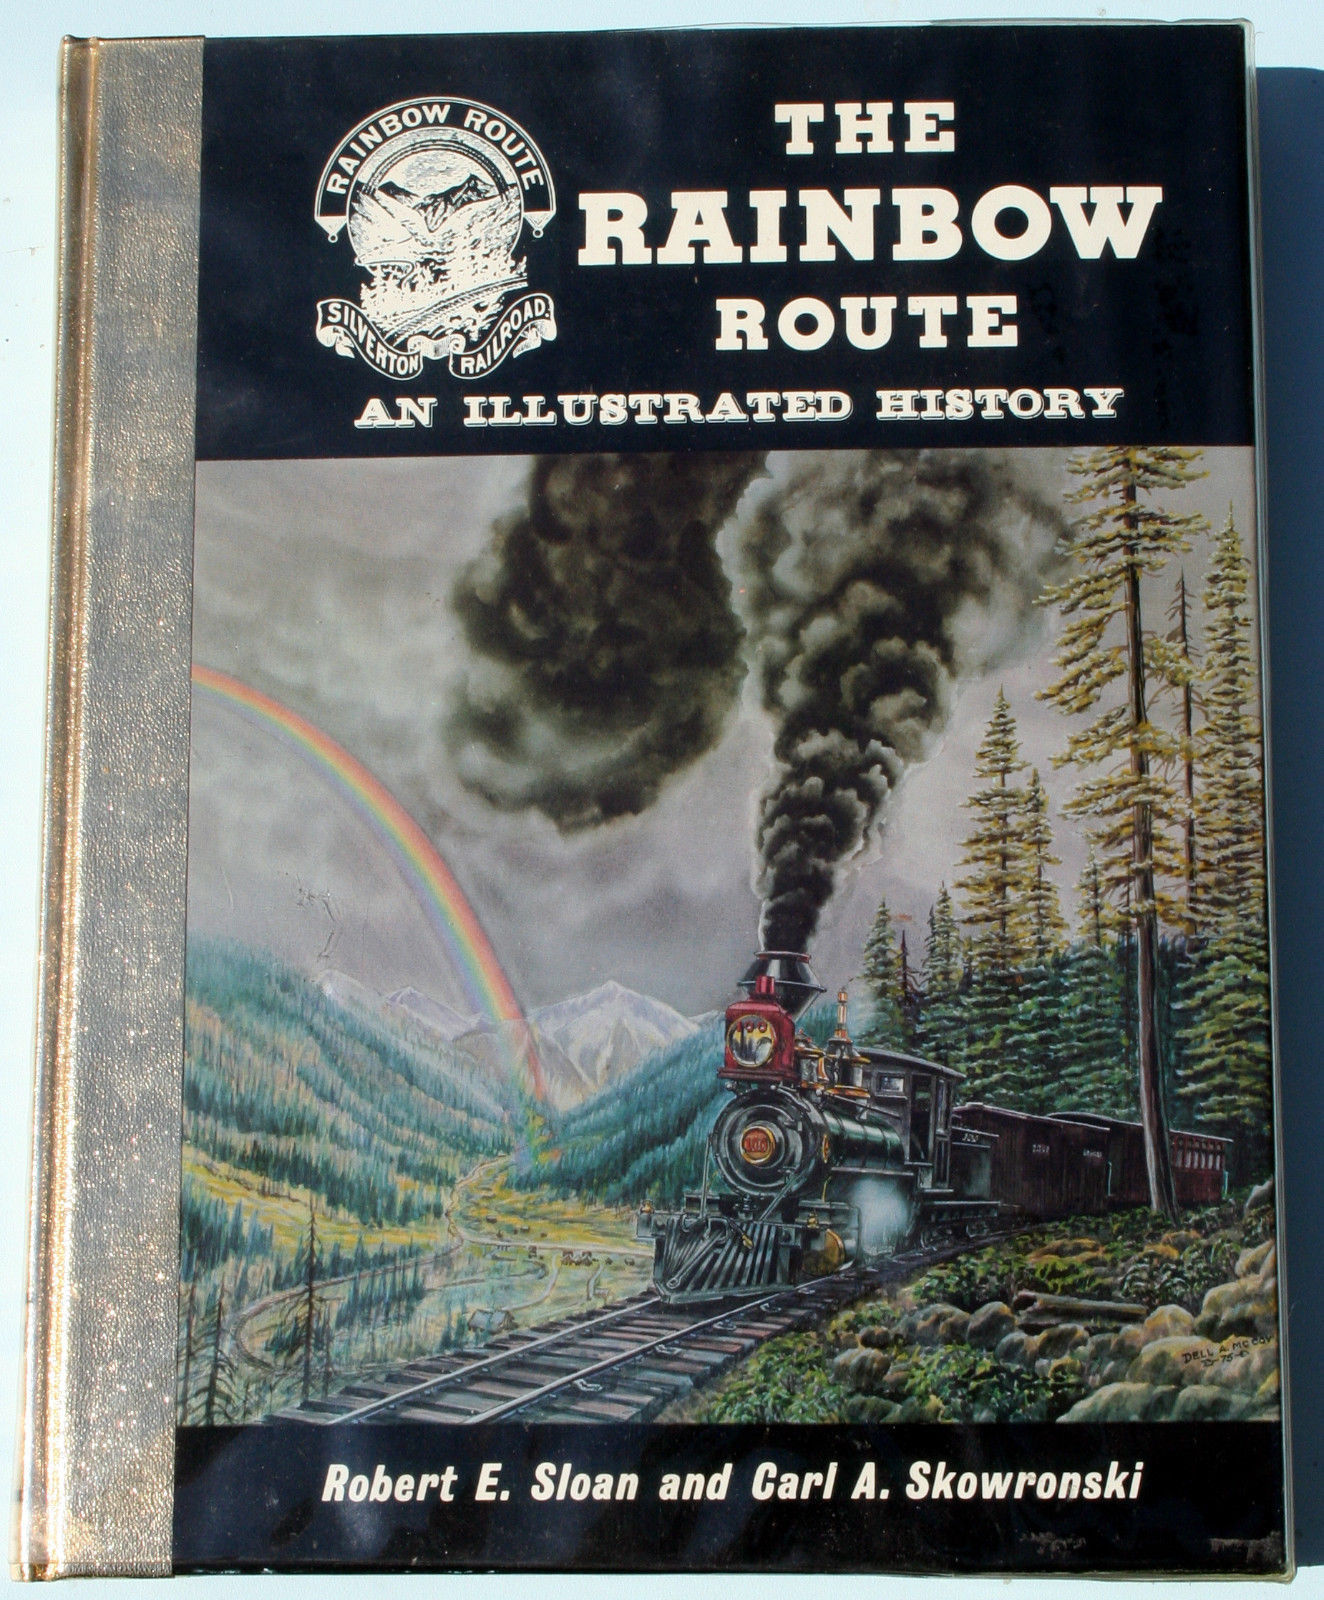 Primary image for The Rainbow Route: An Illustrated History of the Silverton RR signed ltd FEFP NF